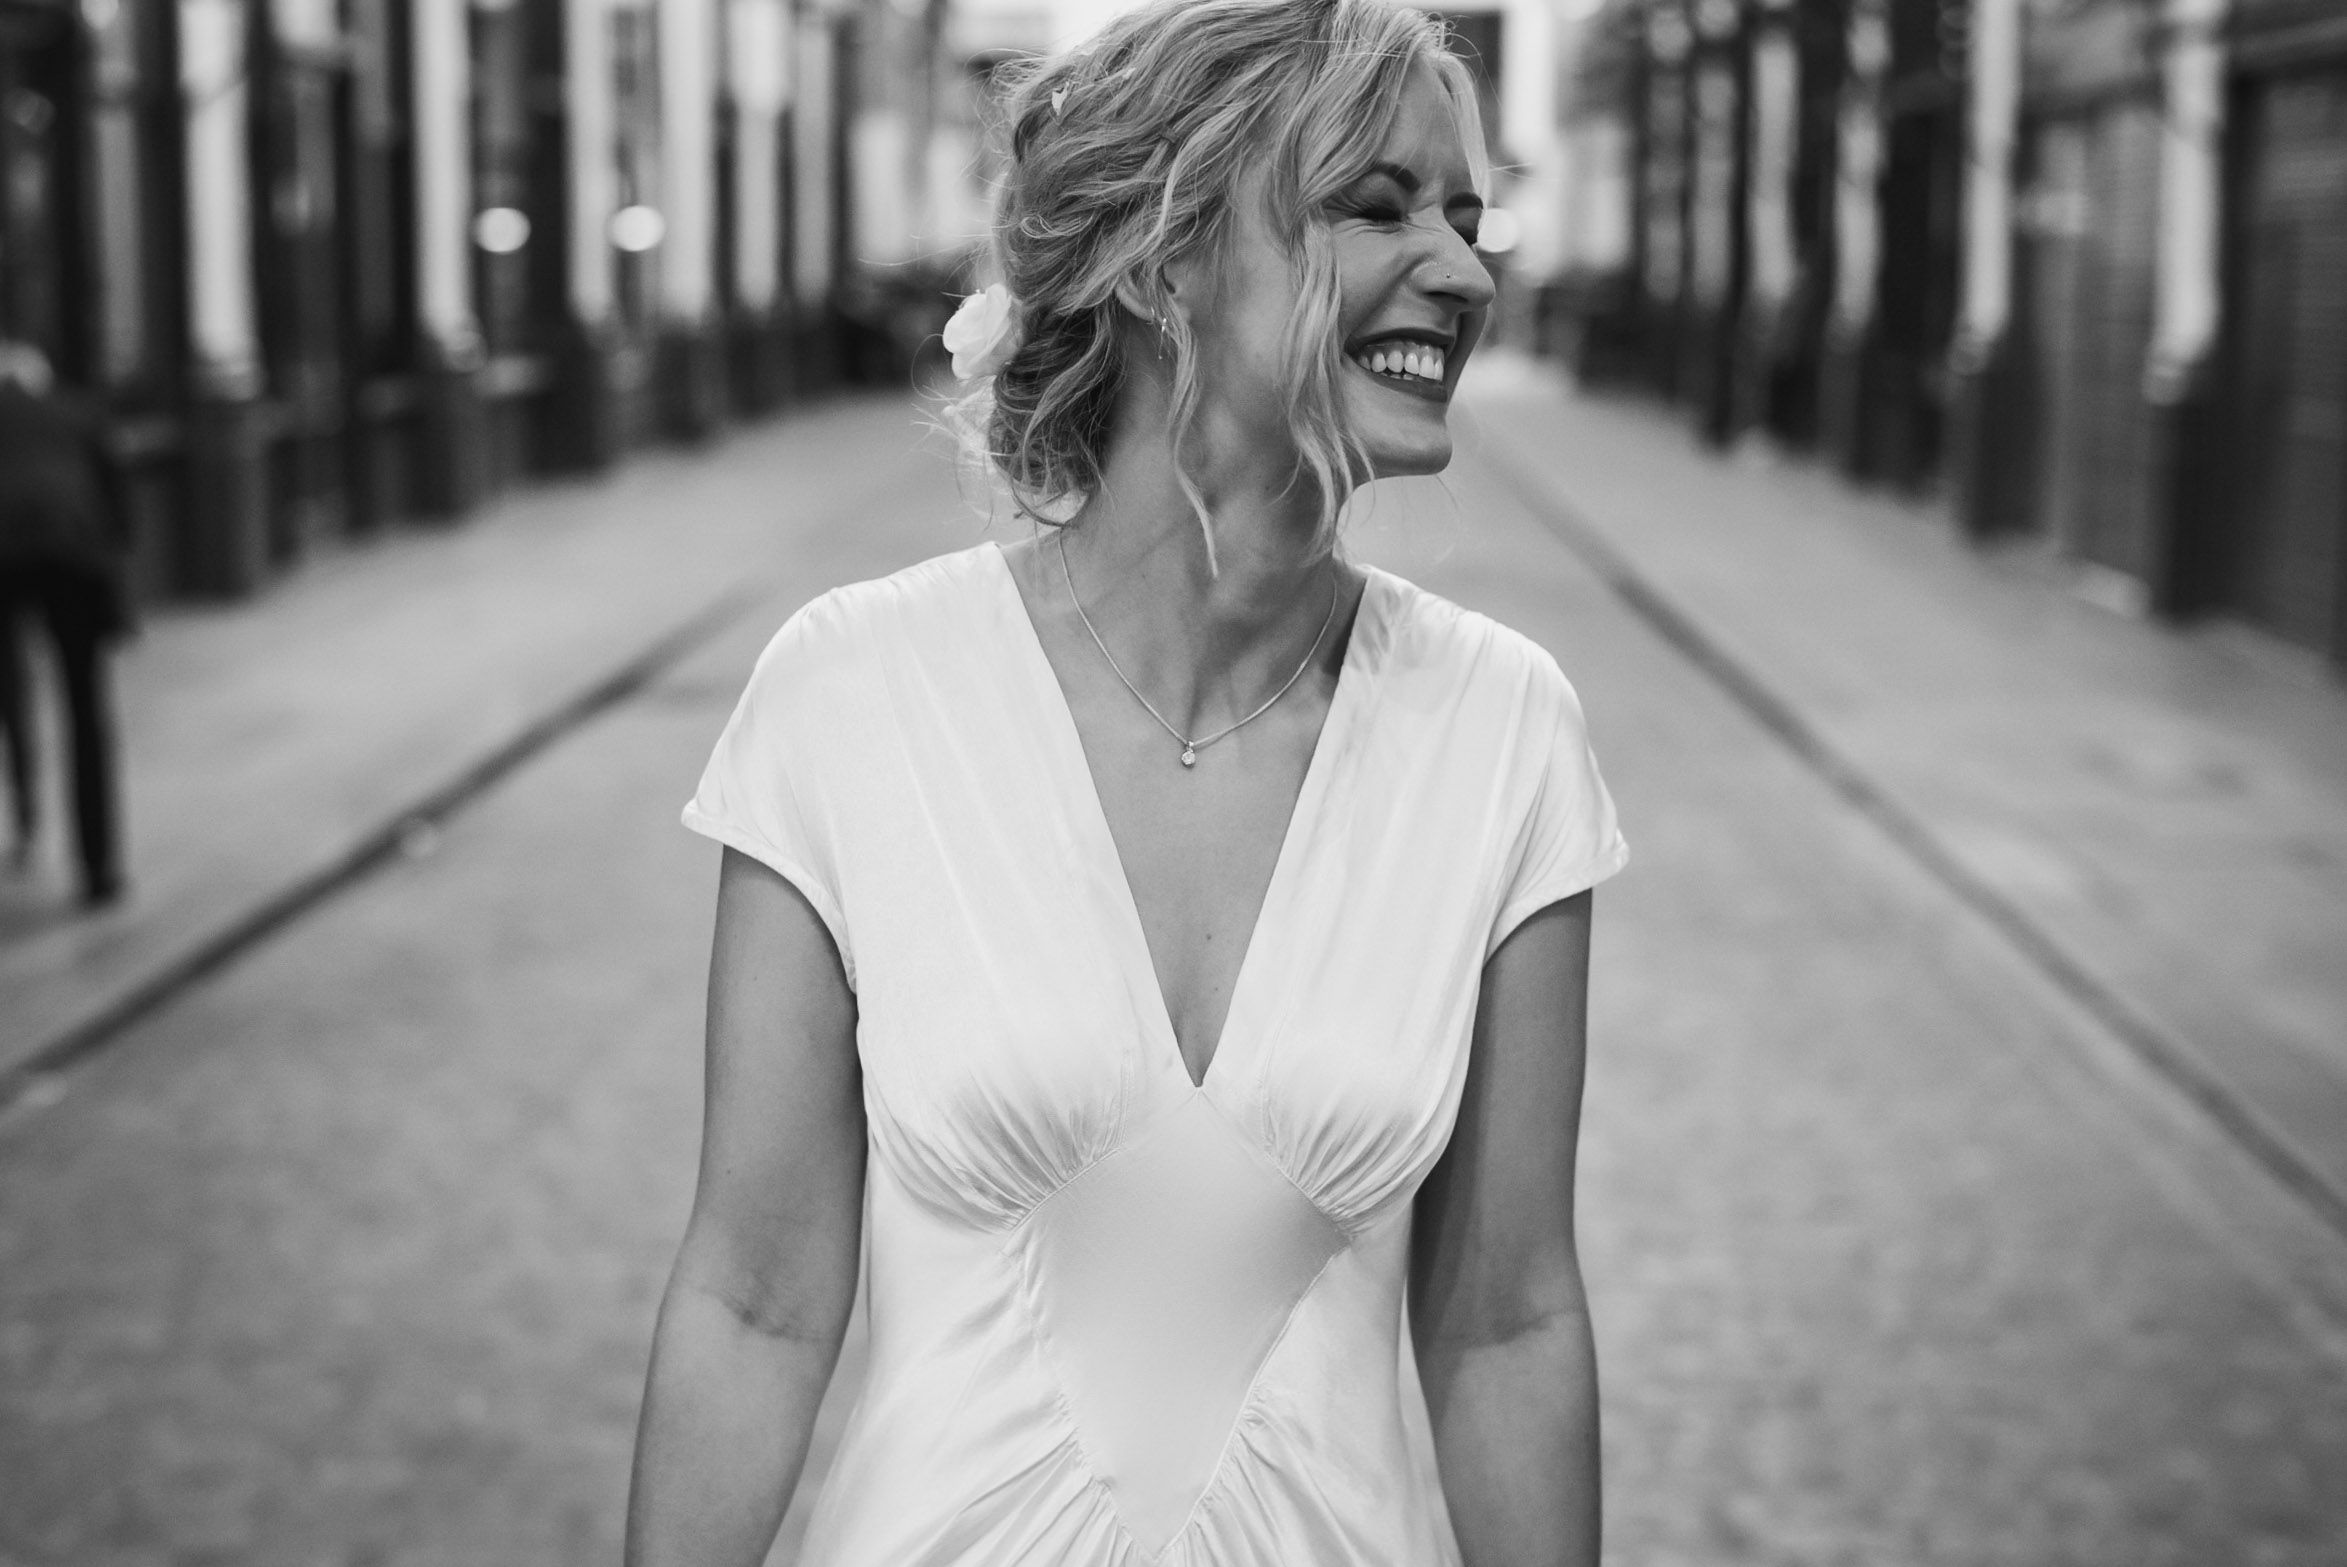 carine bea photography, pub wedding London , The Lamb Tavern Leadenhall, bride portrait